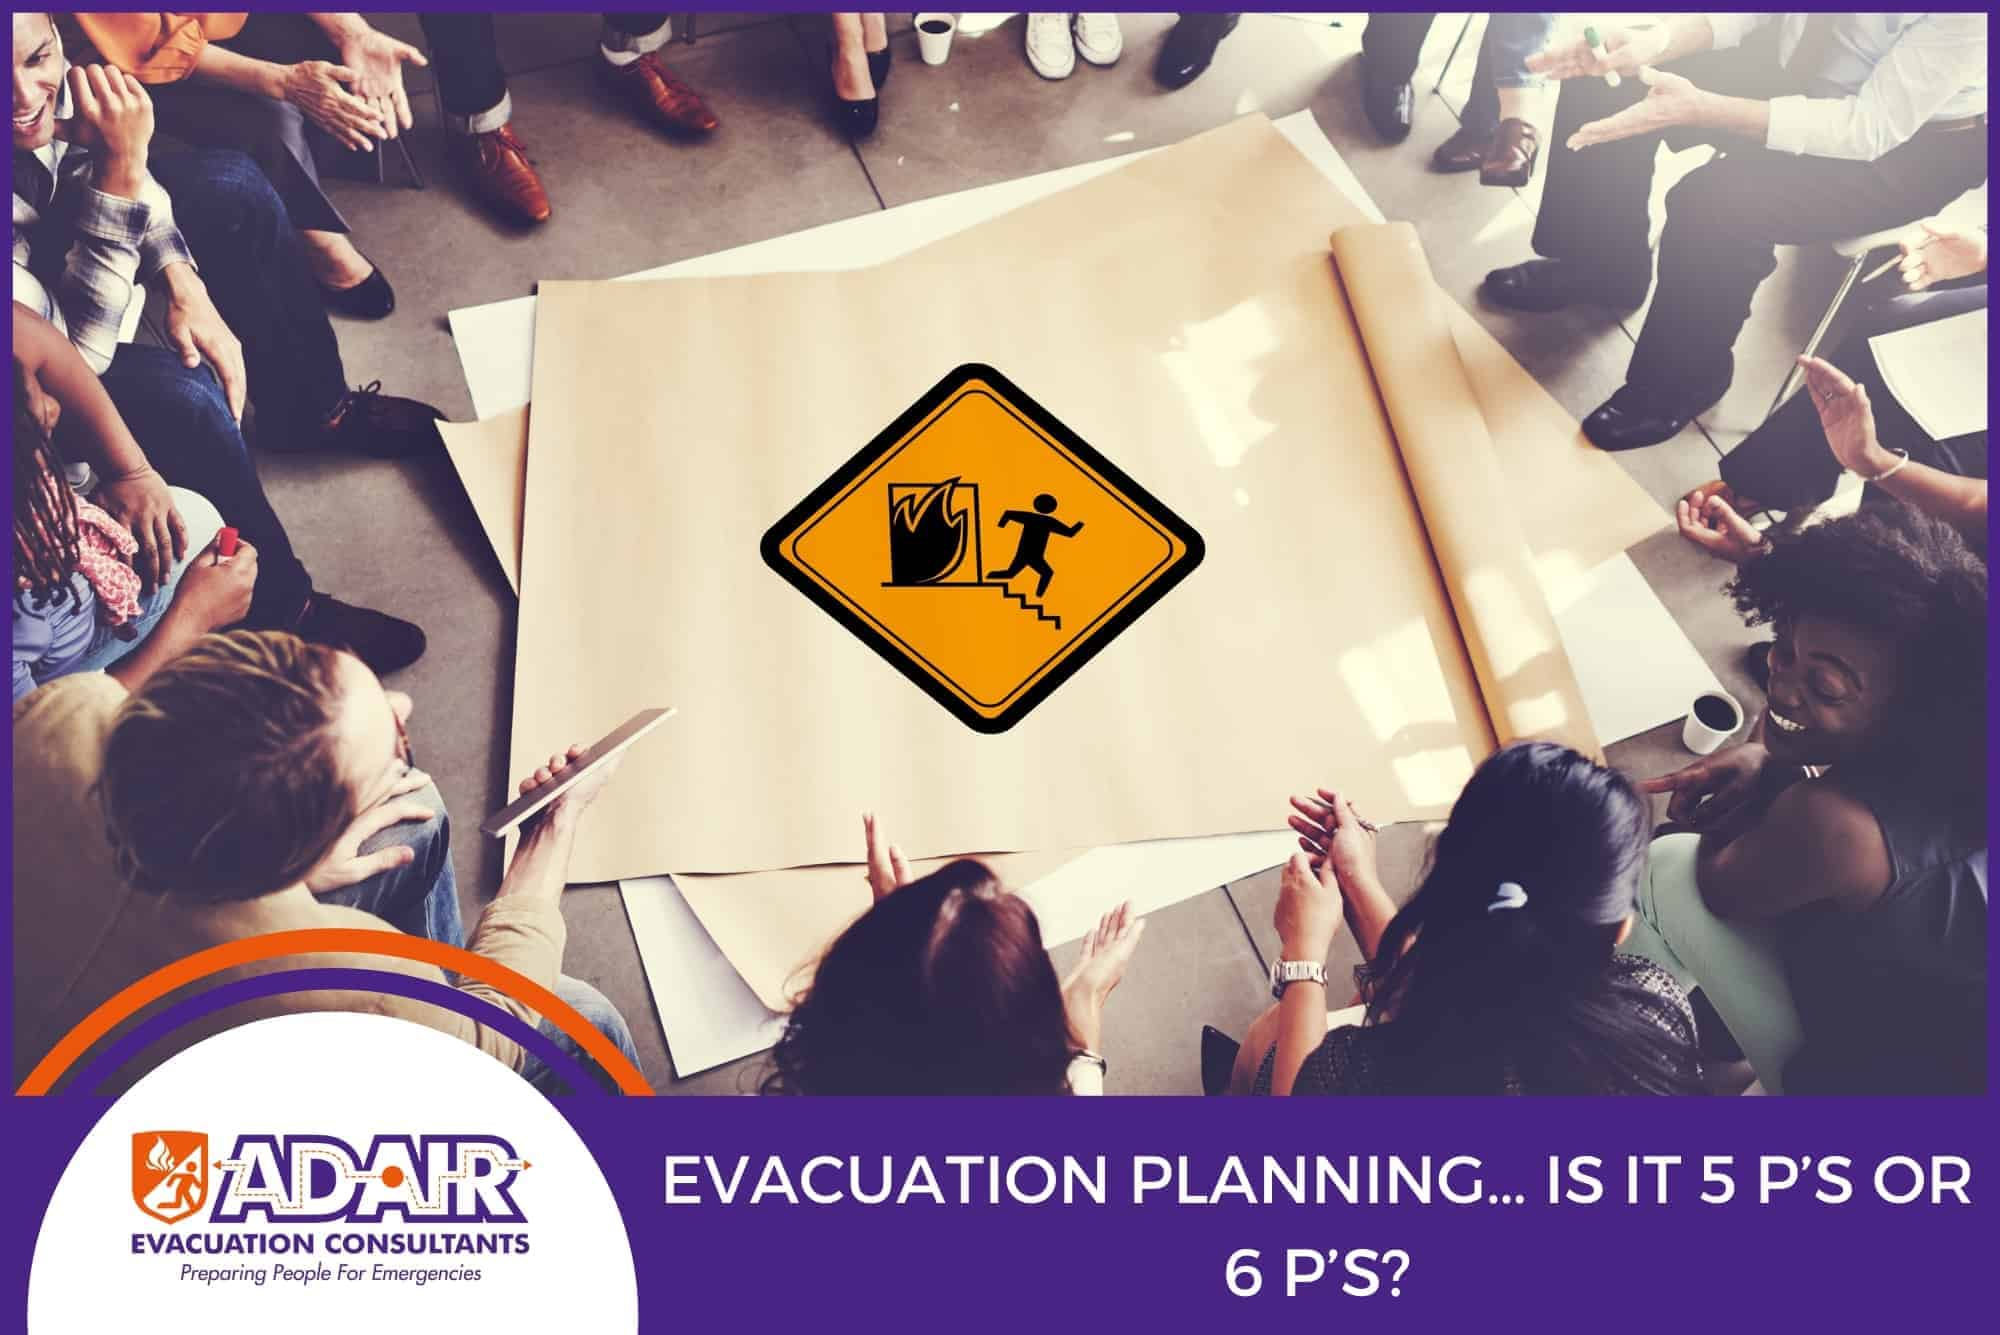 Evacuation planning… is it 5 P's or 6 P's